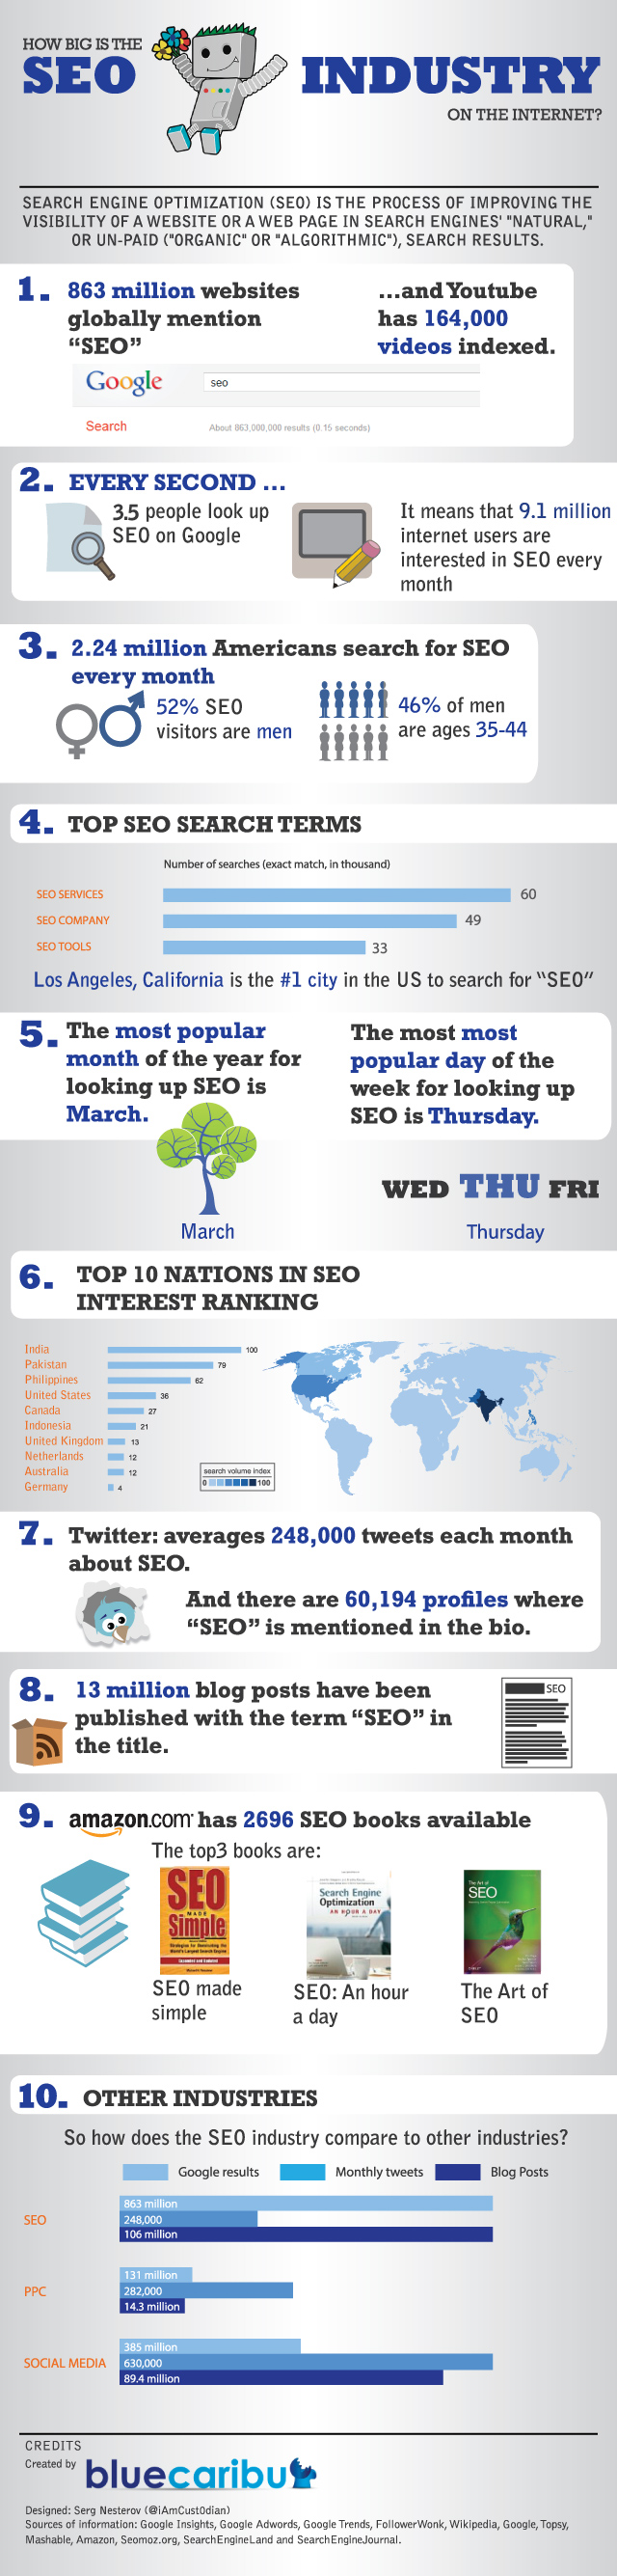 facts about seo industry